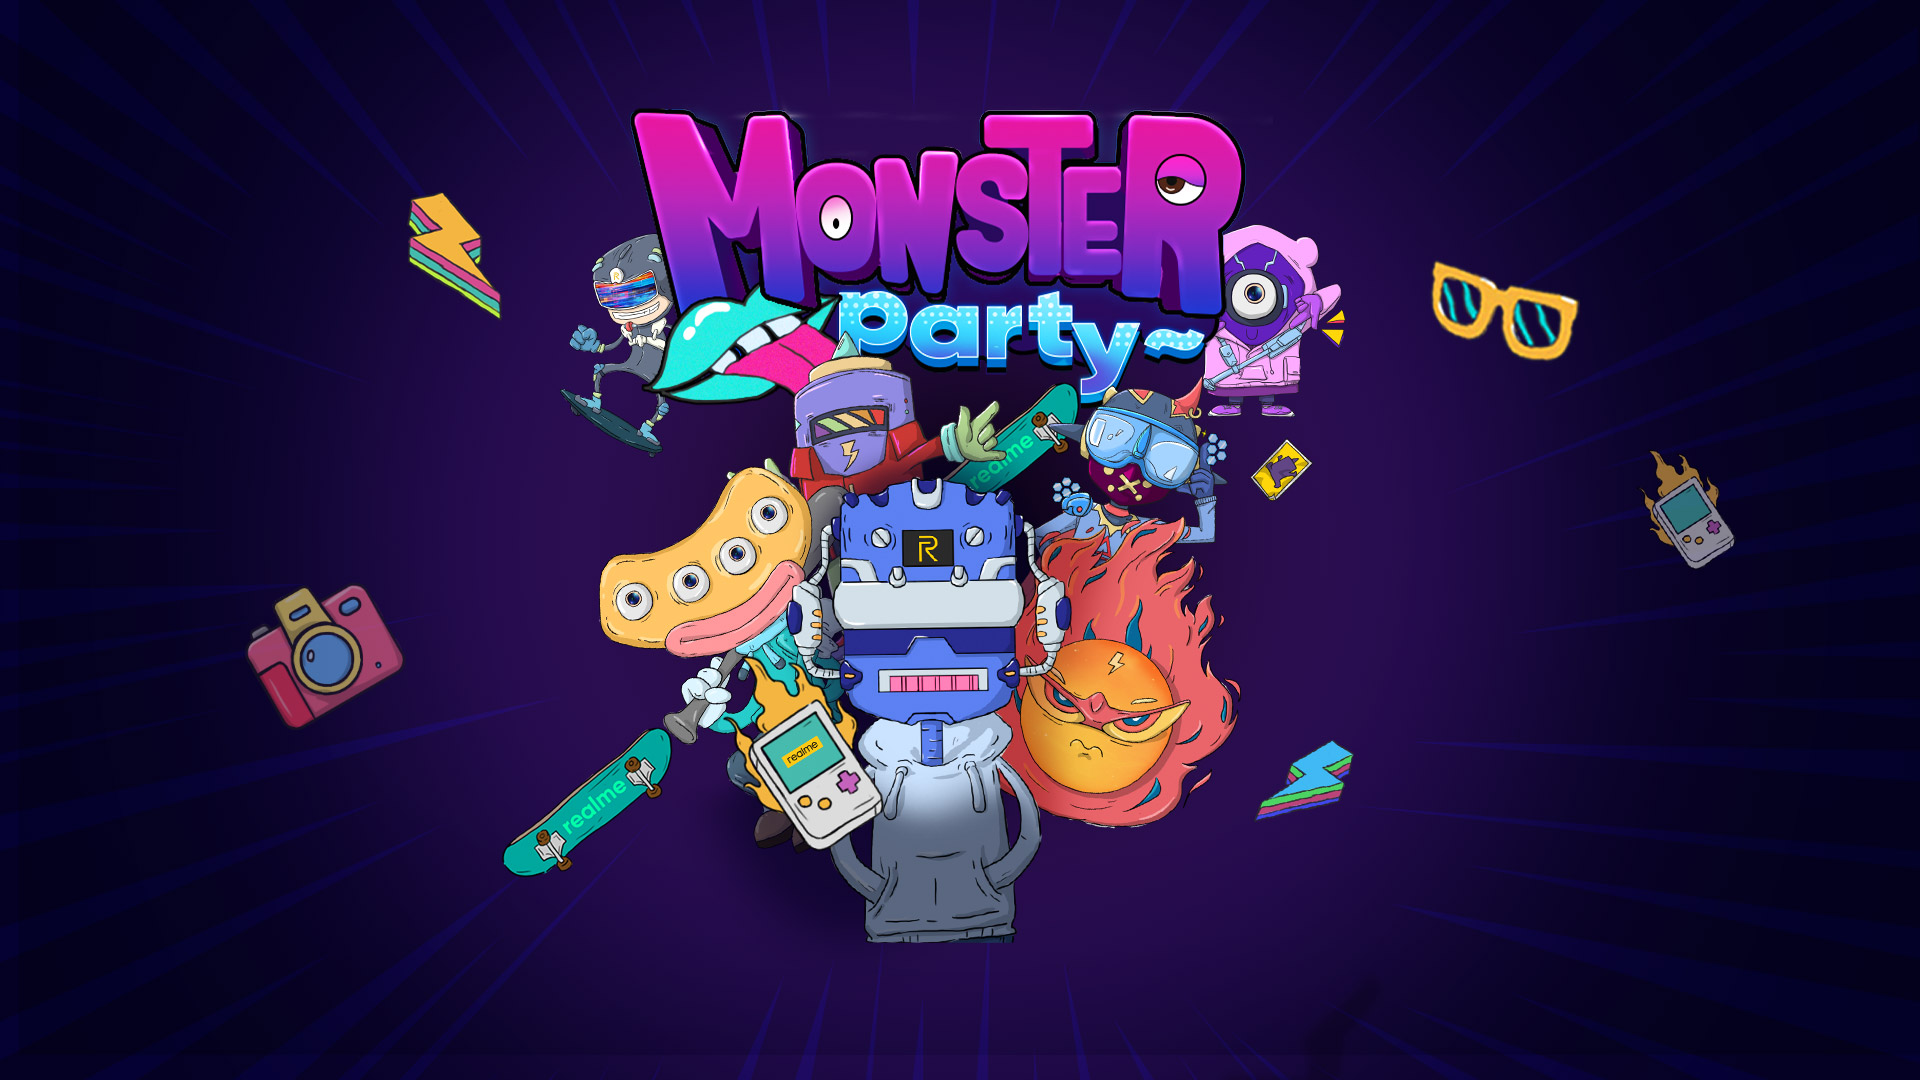 realme monster party